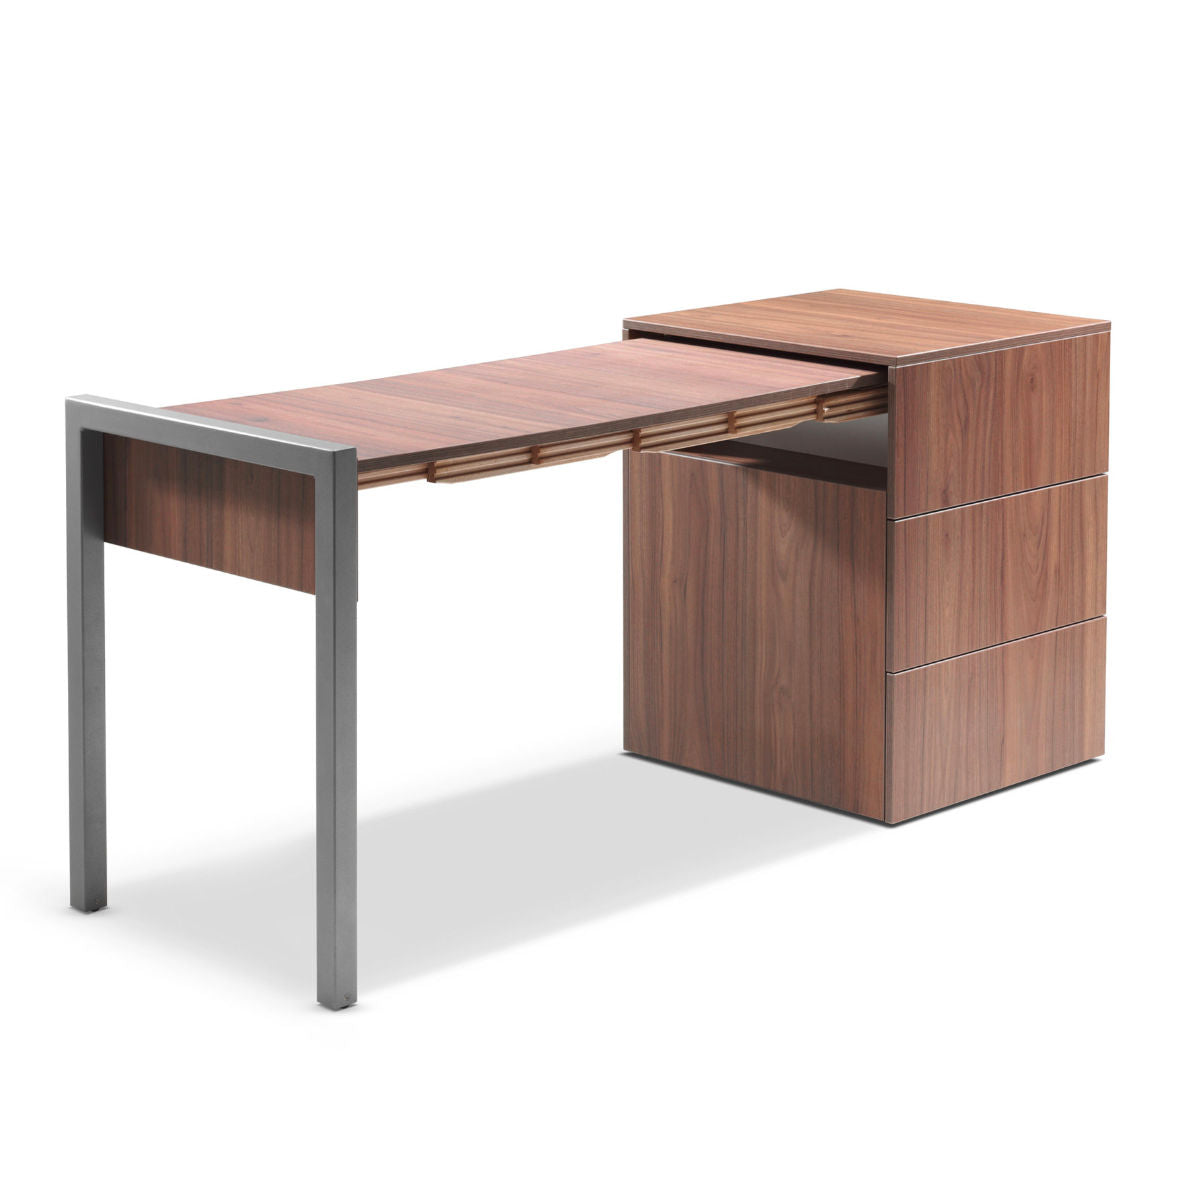 Alwin's Space Box Extendable Table Drawers , Walnut-Walnut